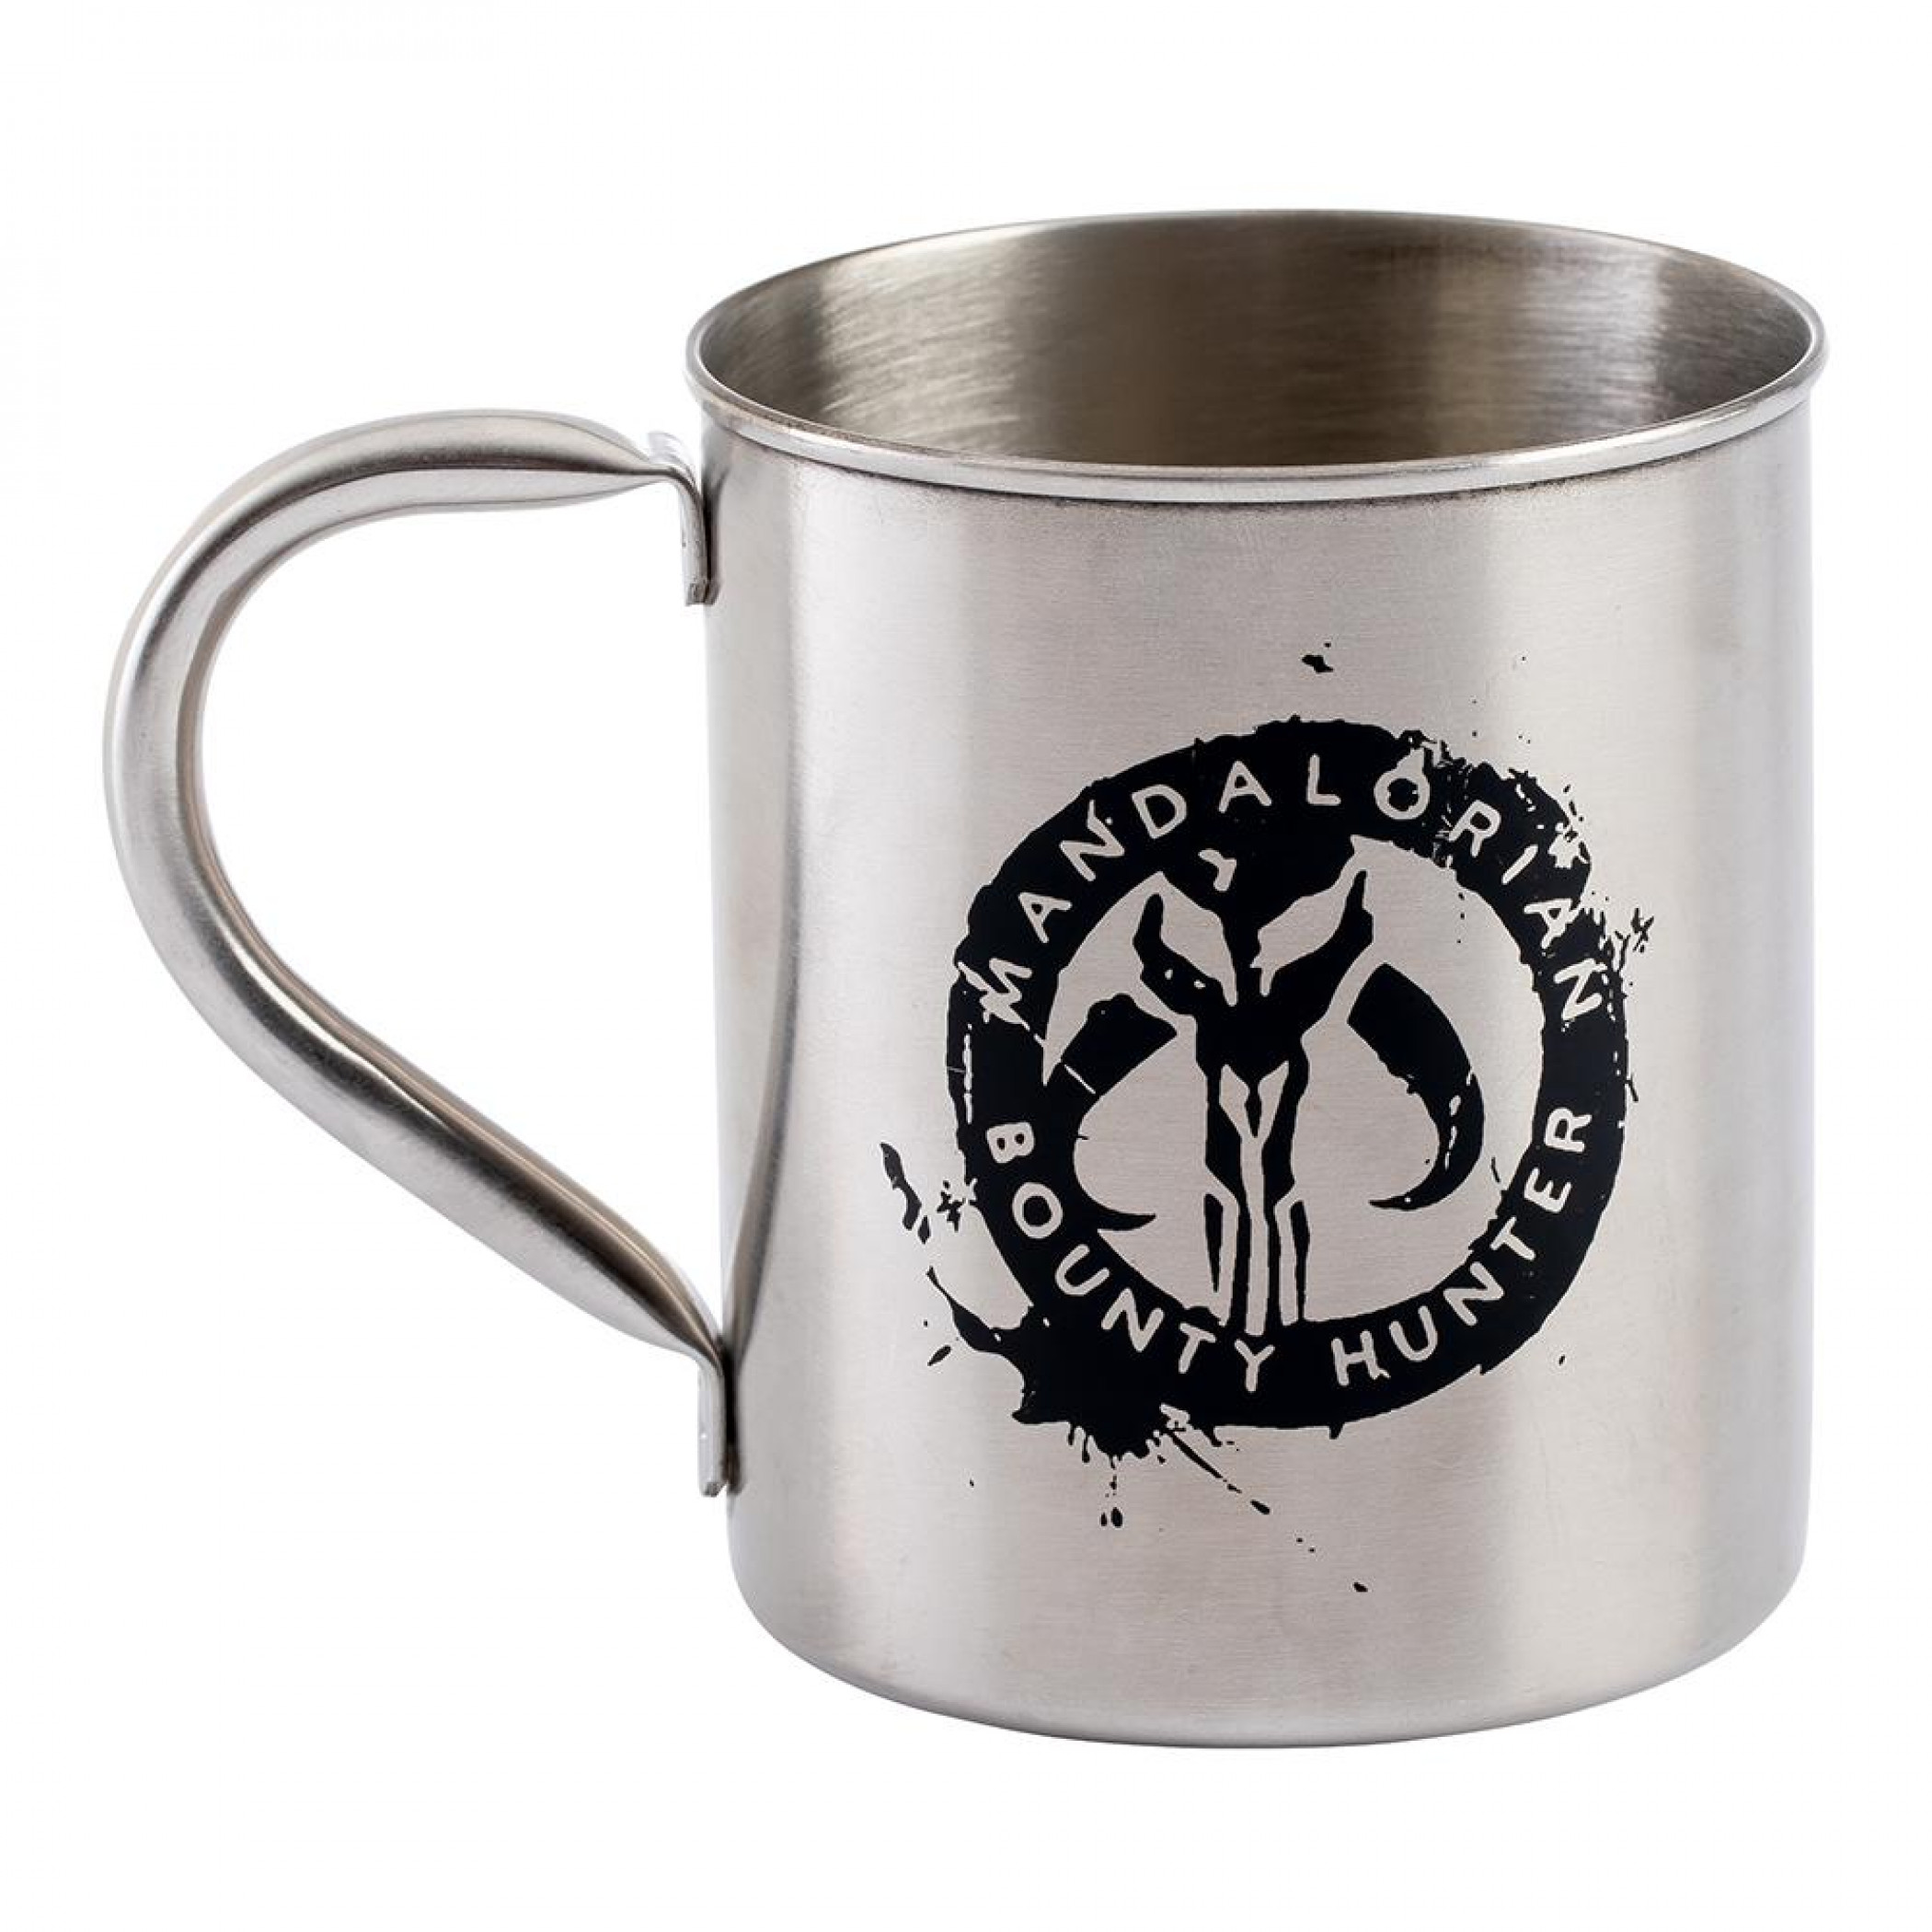 Star Wars The Mandalorian 12 oz. Metal Mug